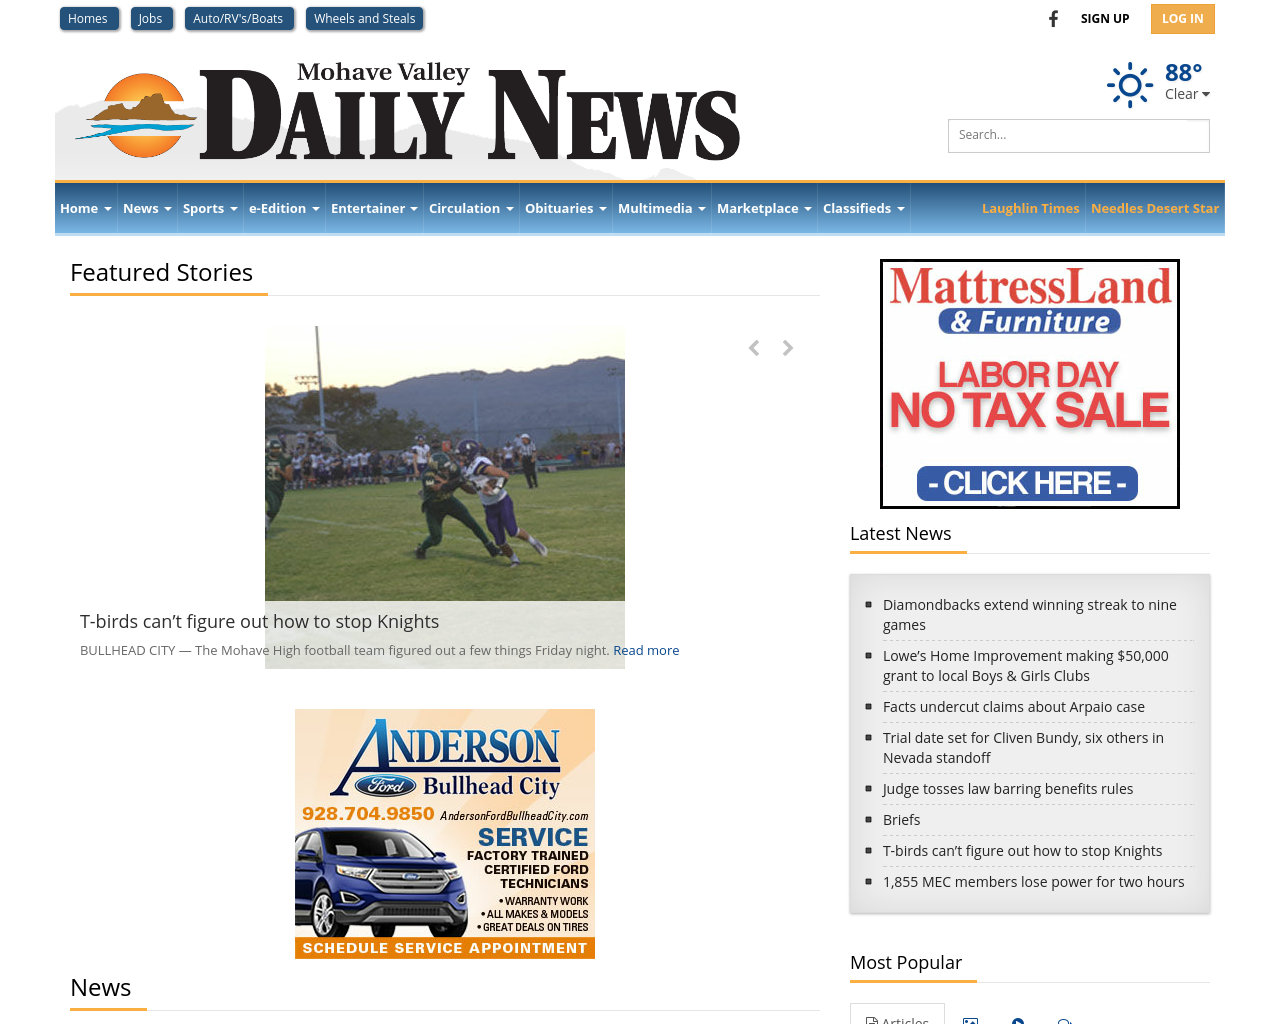 Mohave-Dailynews-Advertising-Reviews-Pricing